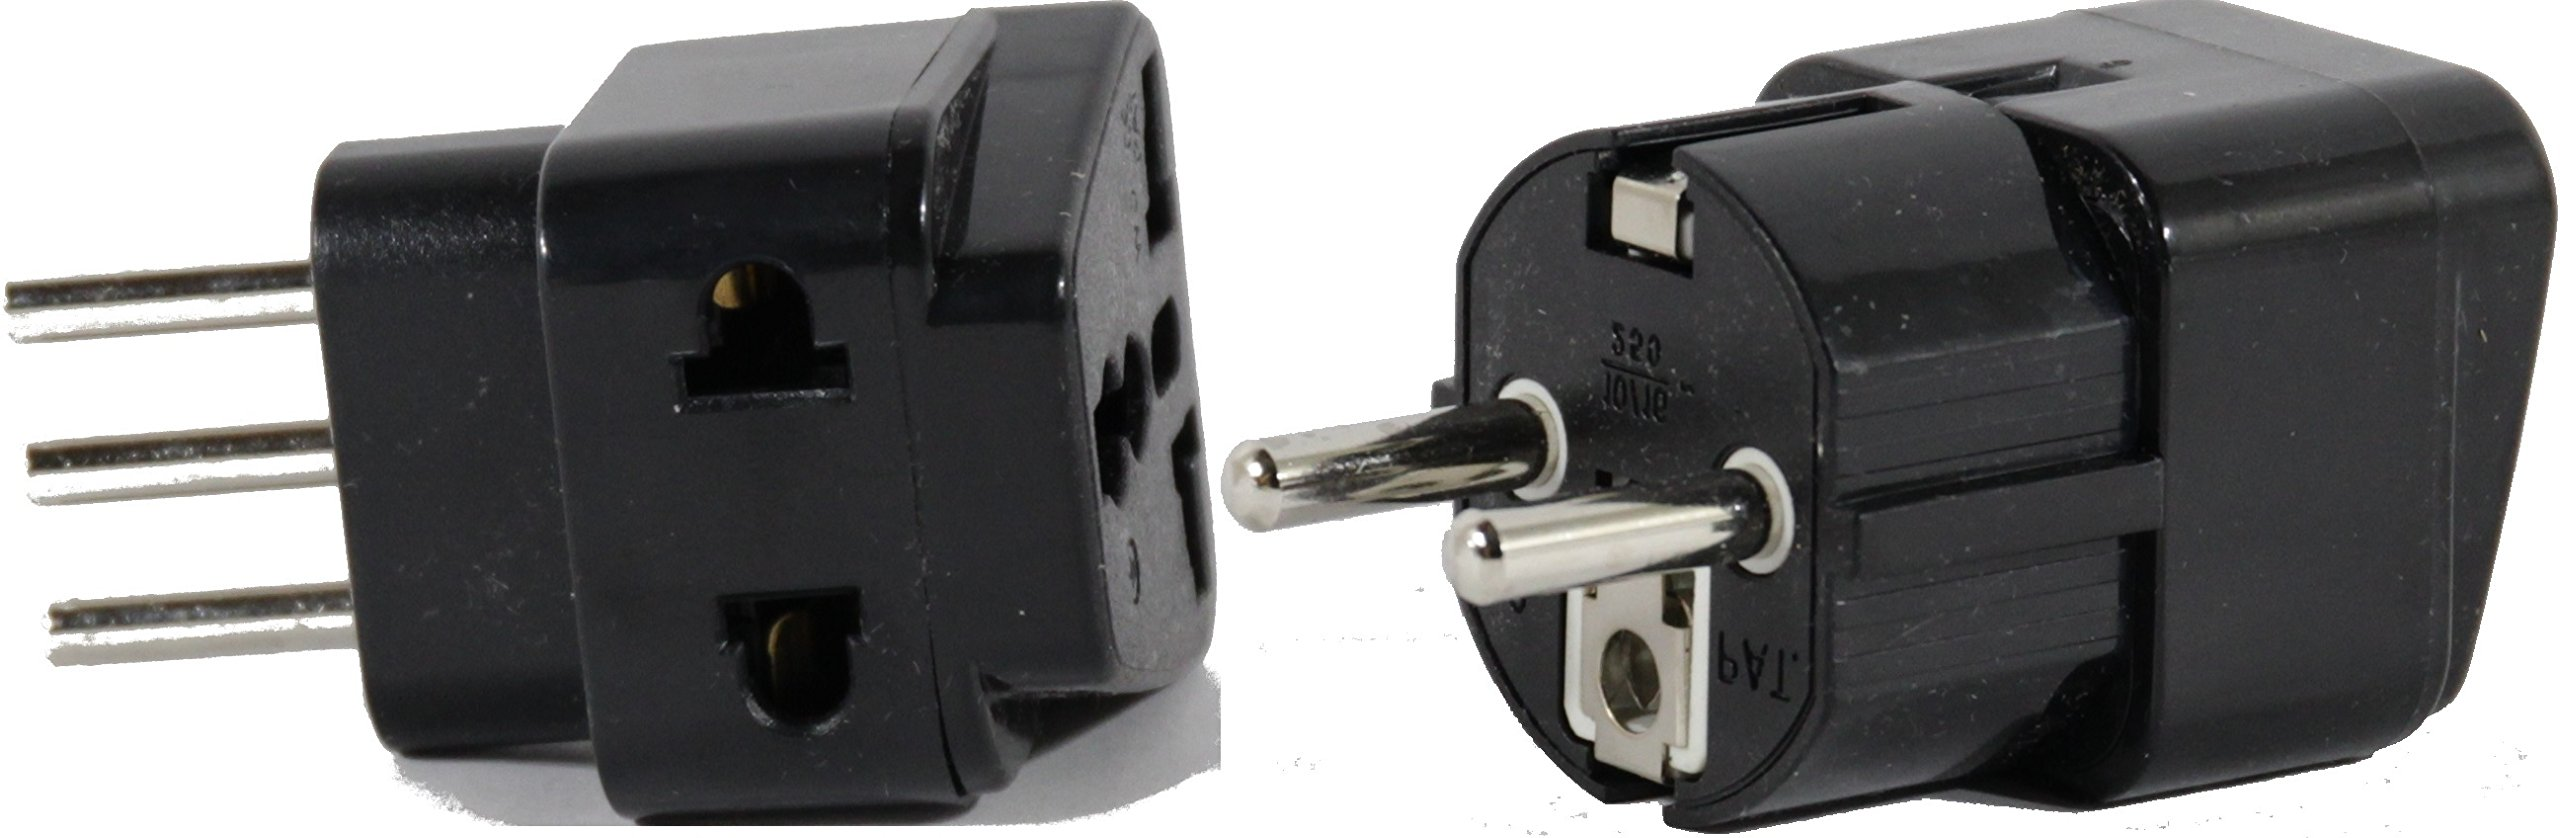 High Quality US to ITALY Travel Adapter Plug for USA/Universal to EUROPE Type E (C/F) & L AC Power Plugs Pack of 2 by Plug in Solutions